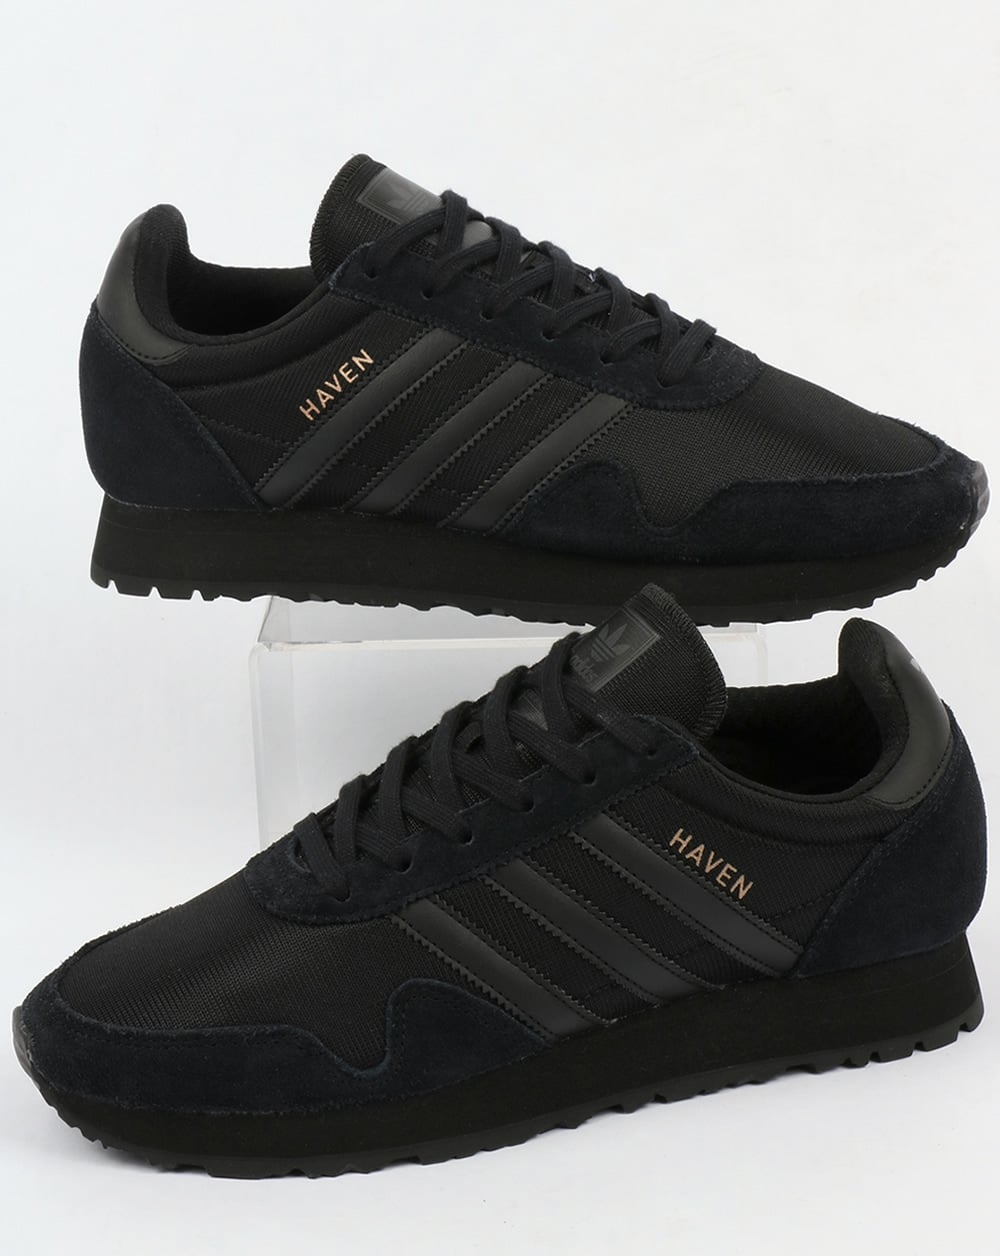 adidas Haven shoes black